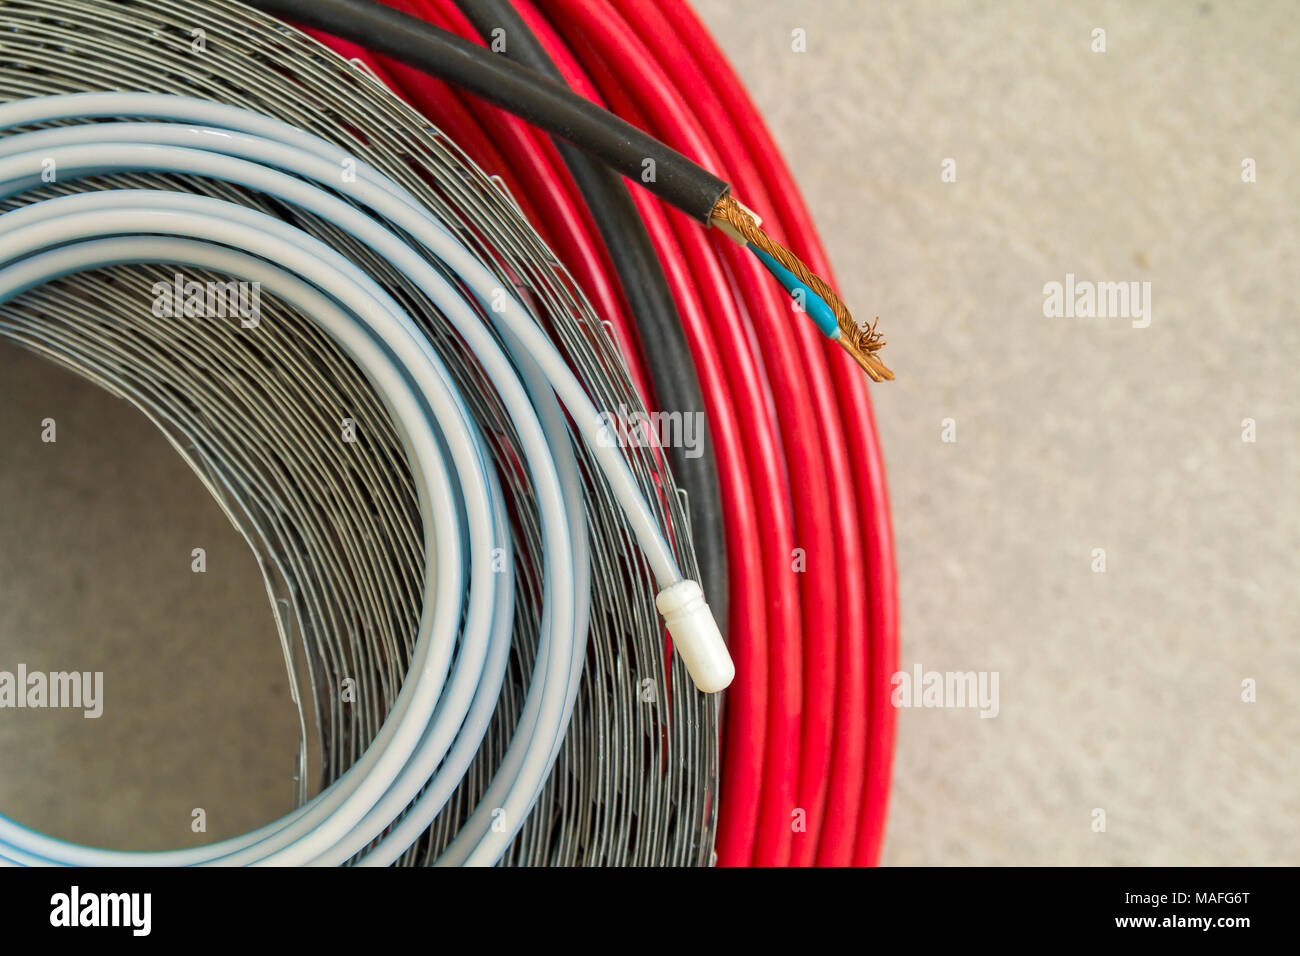 Heating floor system wires and cables. Renovation and construction ...